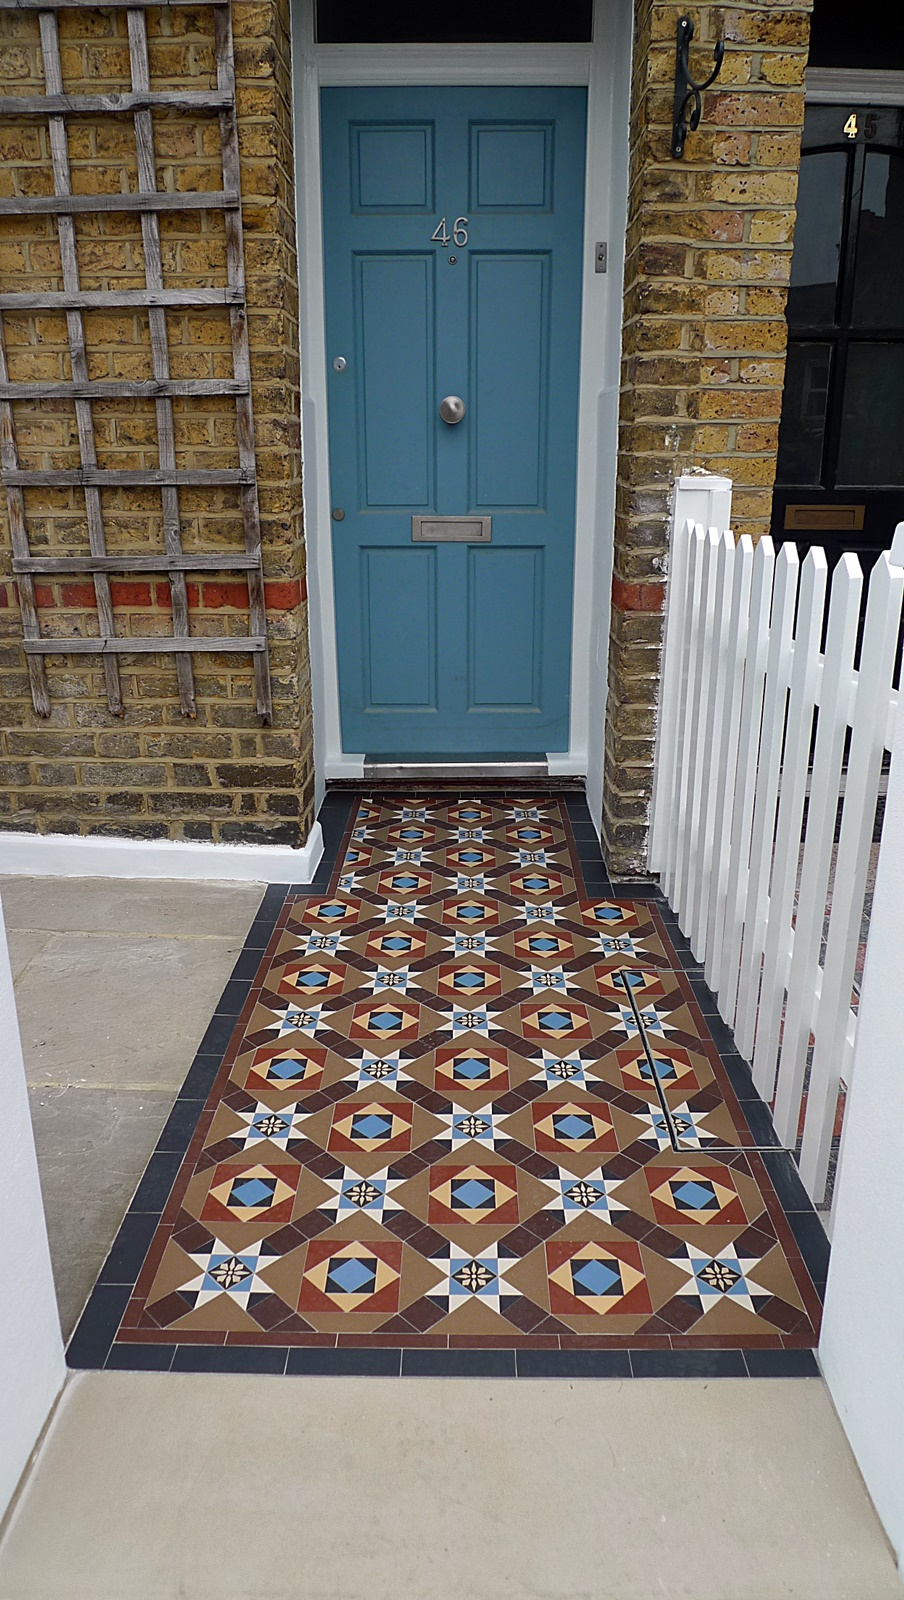 london front garden company victorian mosaic tile path york stone entrance stone sandstone paving earlsfiled wandsworth putney balham clapham london